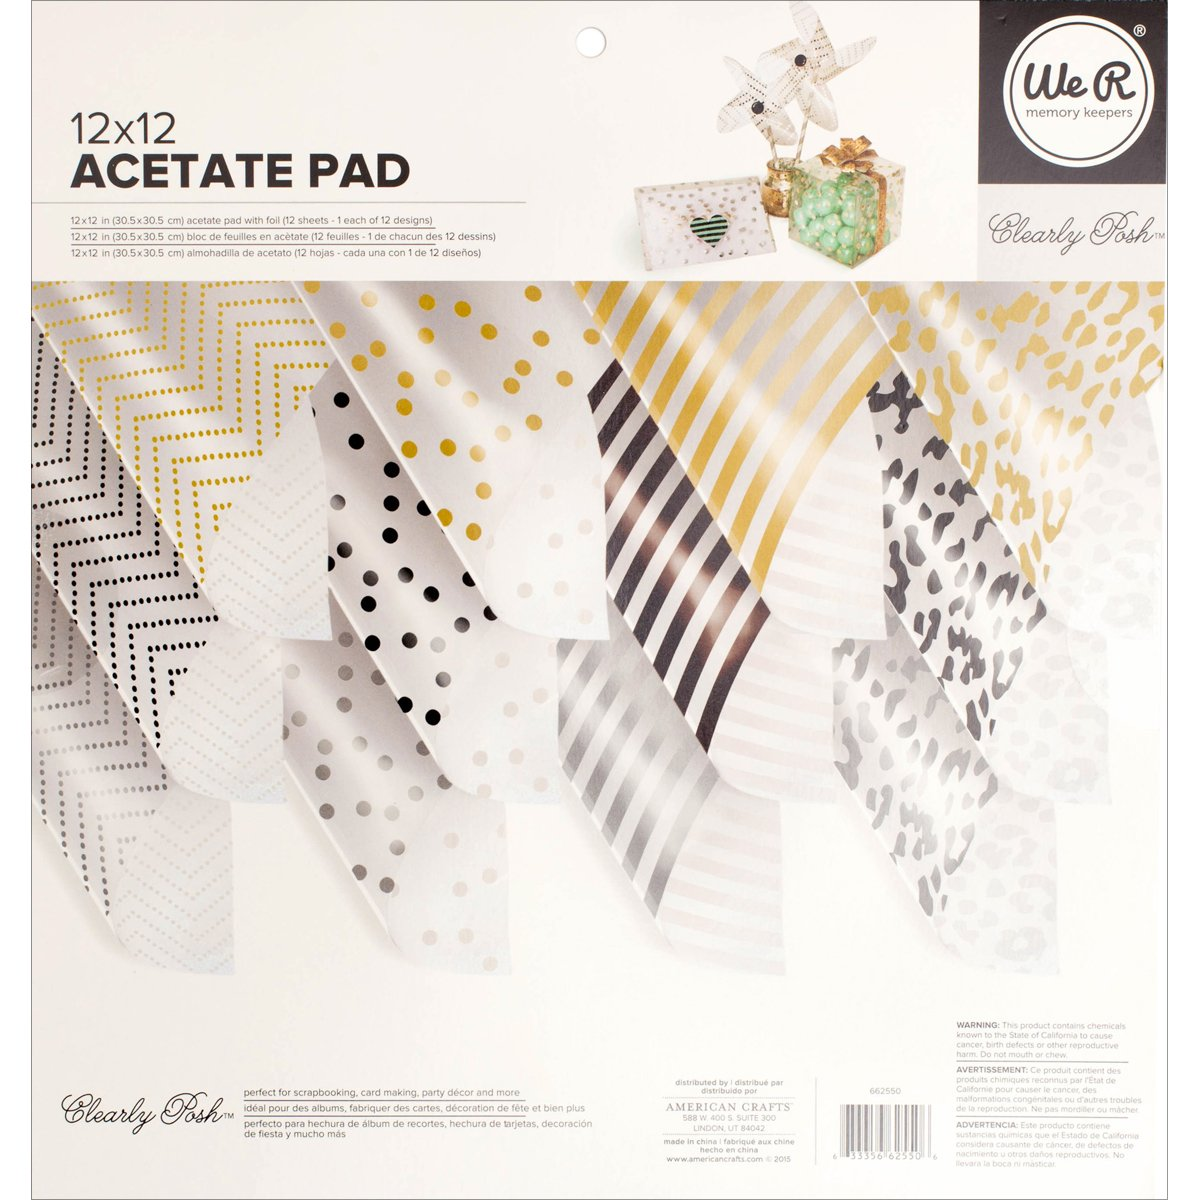 Multi-Colored Foil Accents Includes 12 12 x 12-inch sheets in 12 different designs 12 x 12-inch Clearly Posh Acetate Pad by We R Memory Keepers